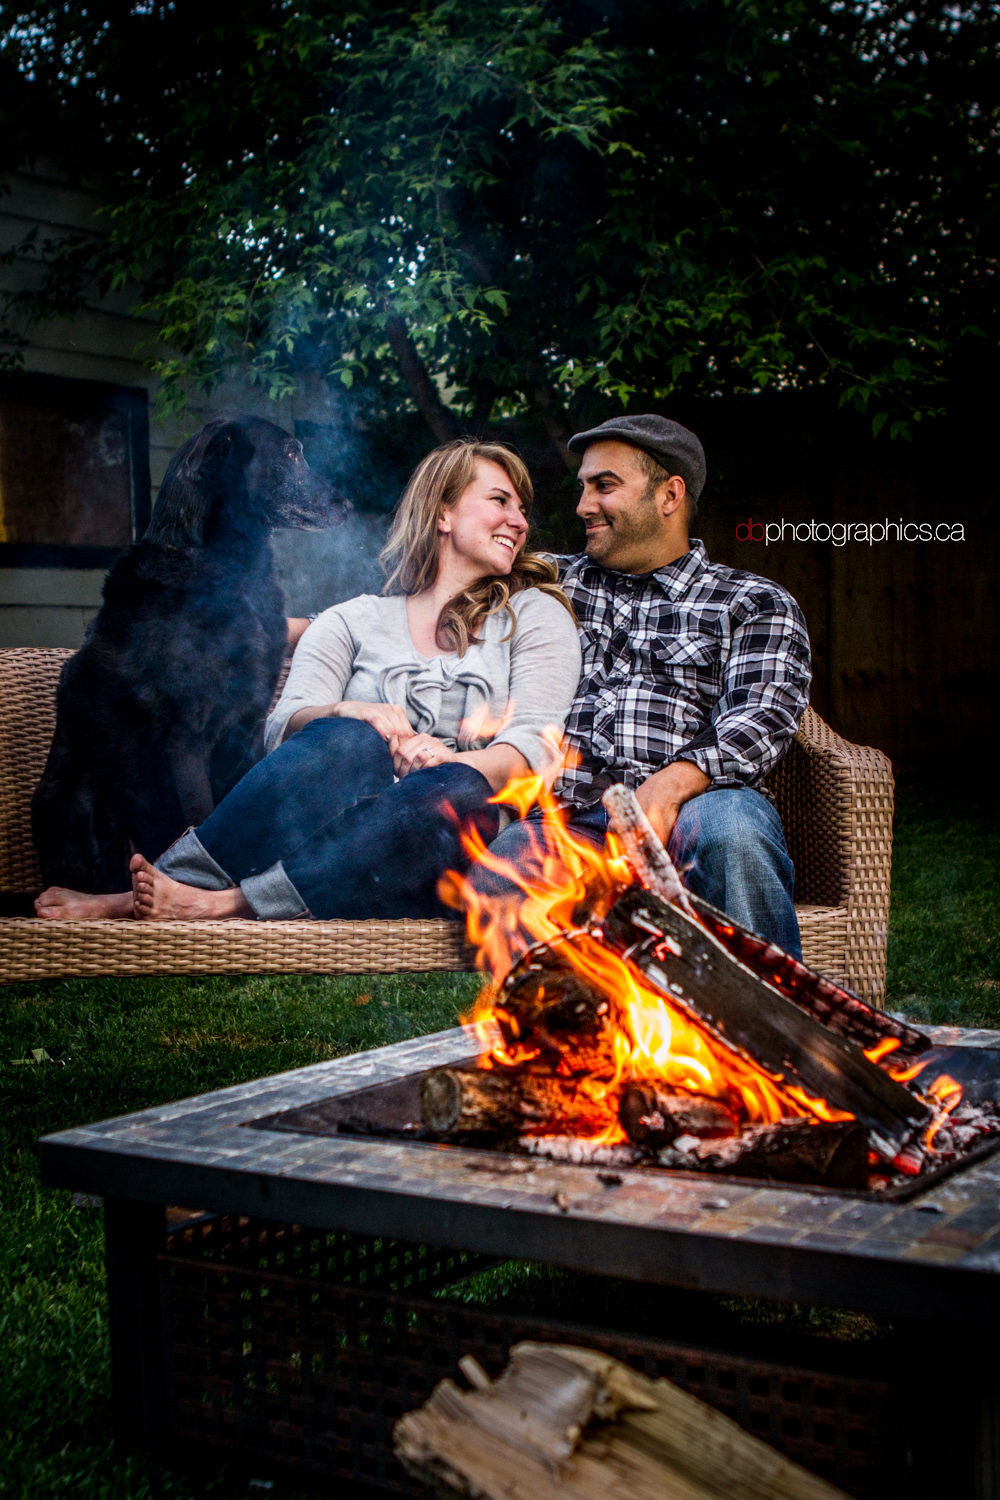 Amy & Ian Engagement Shoot - 20140626 - 0091.jpg